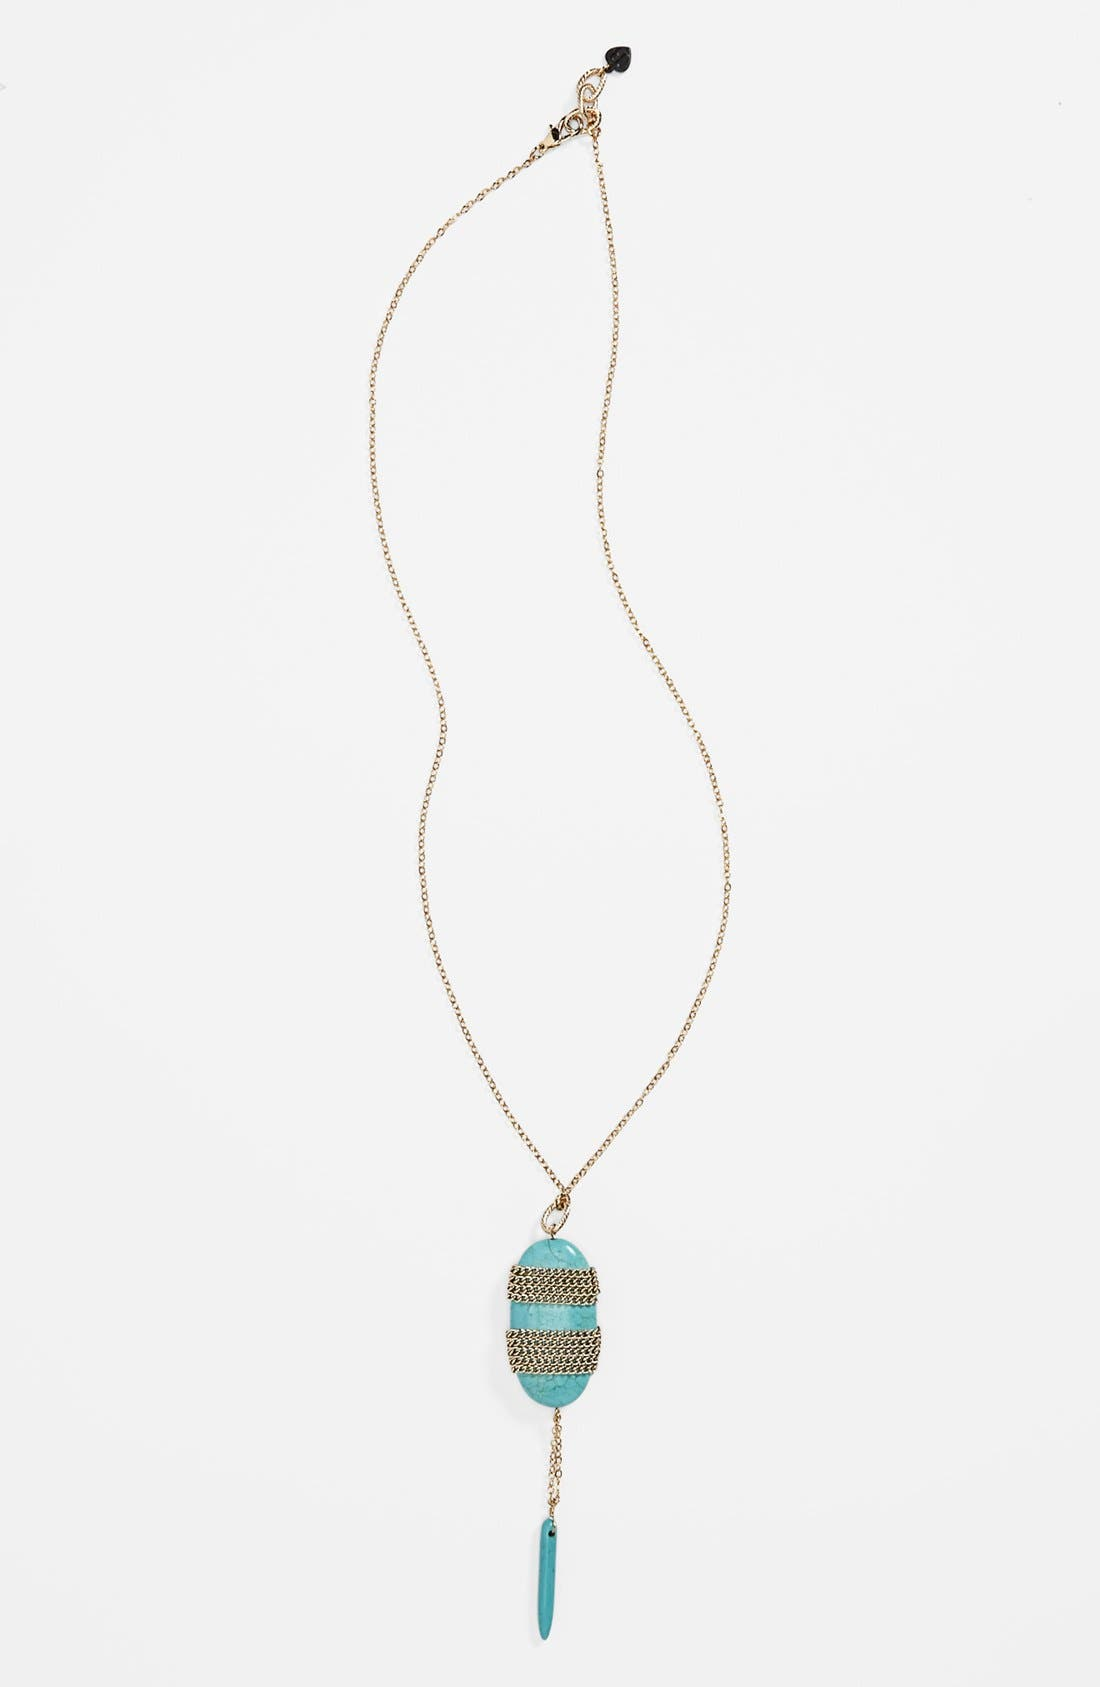 Main Image - Bonnie Jonas Turquoise Pendant Necklace